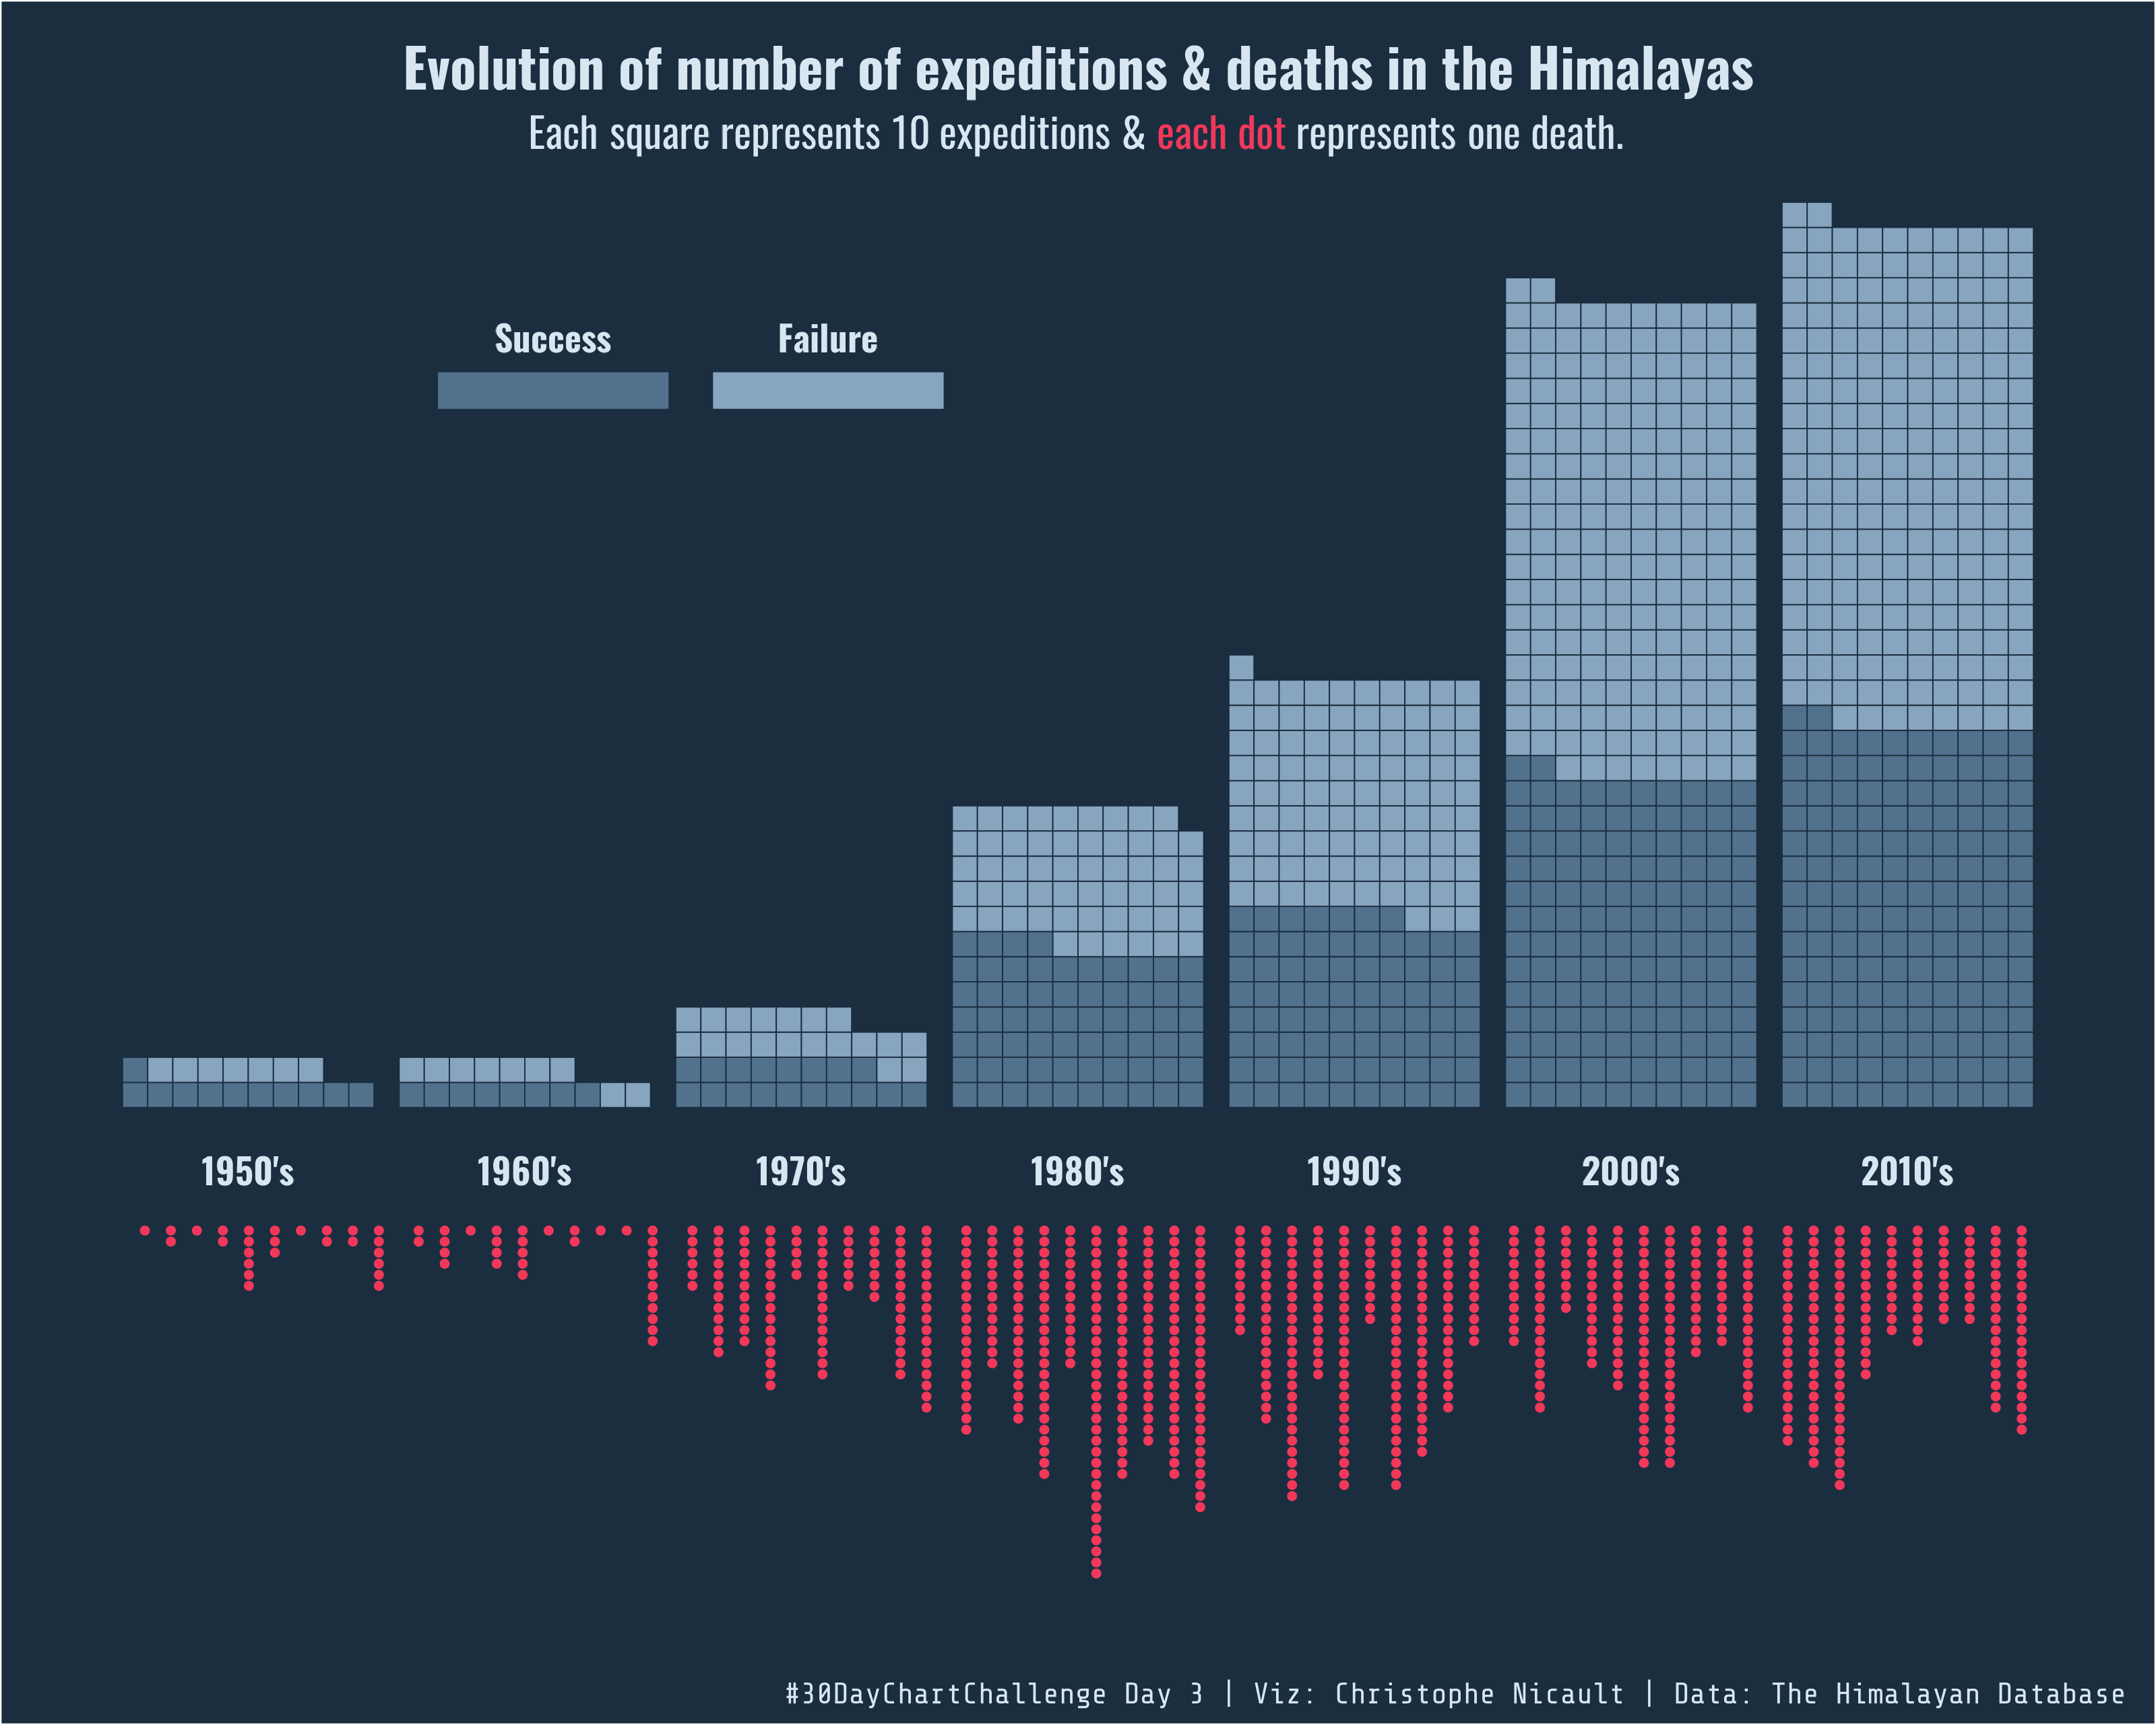 expeditions & deaths in the Himalayas